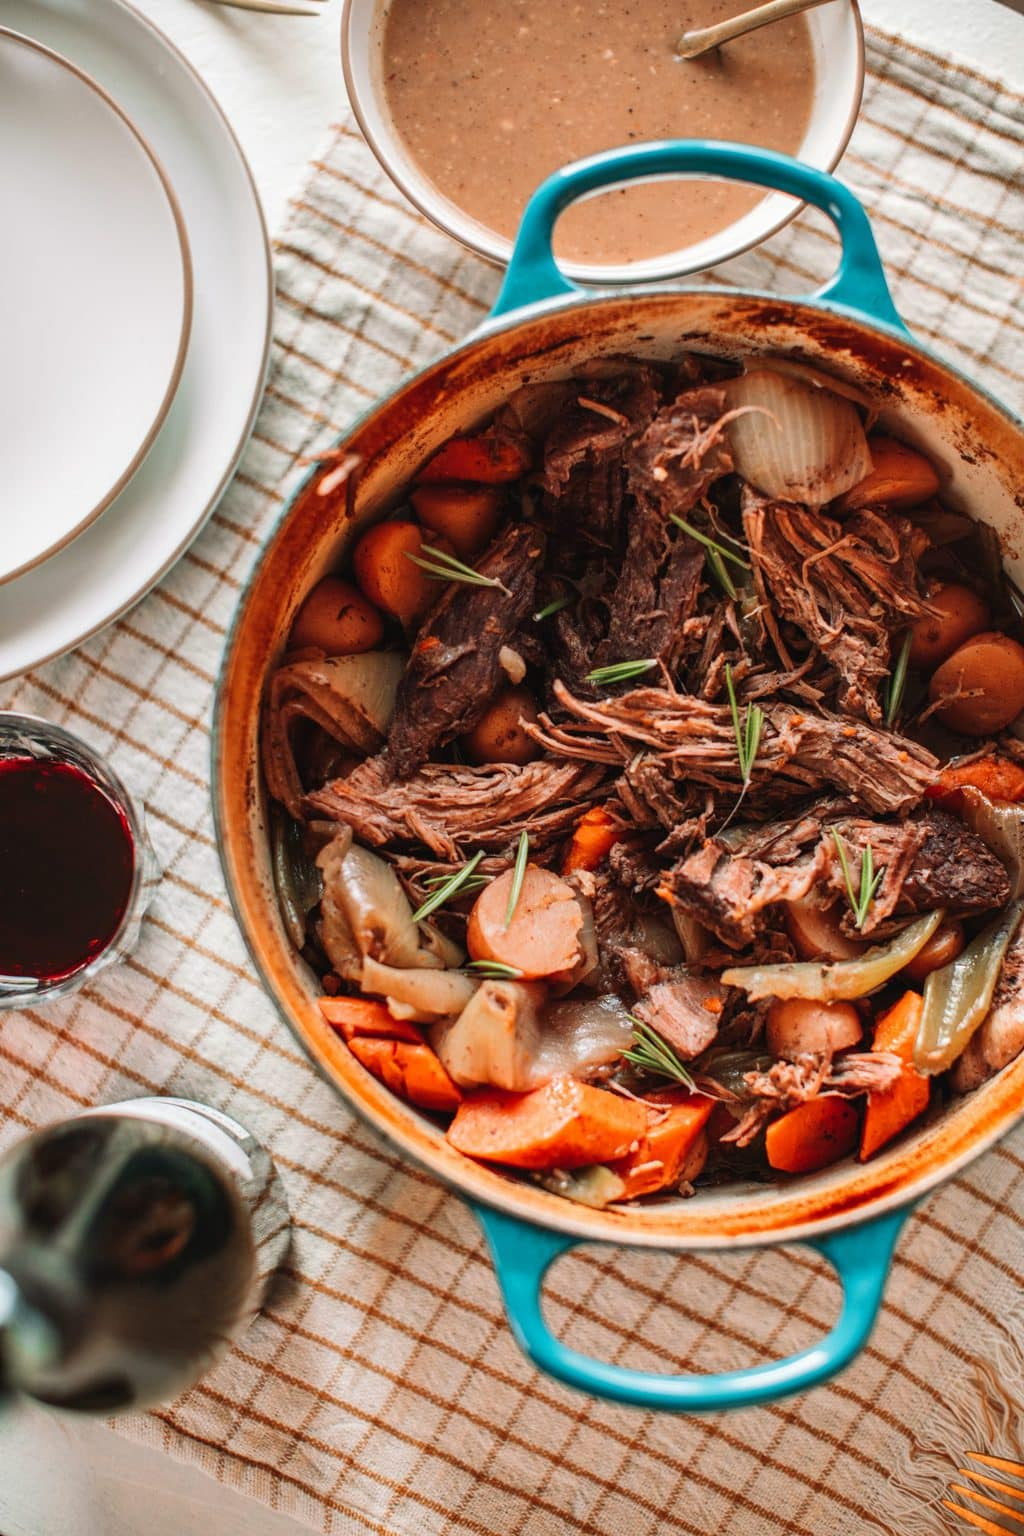 top shot of pot roast and vegetables in dutch oven pot with blue handles